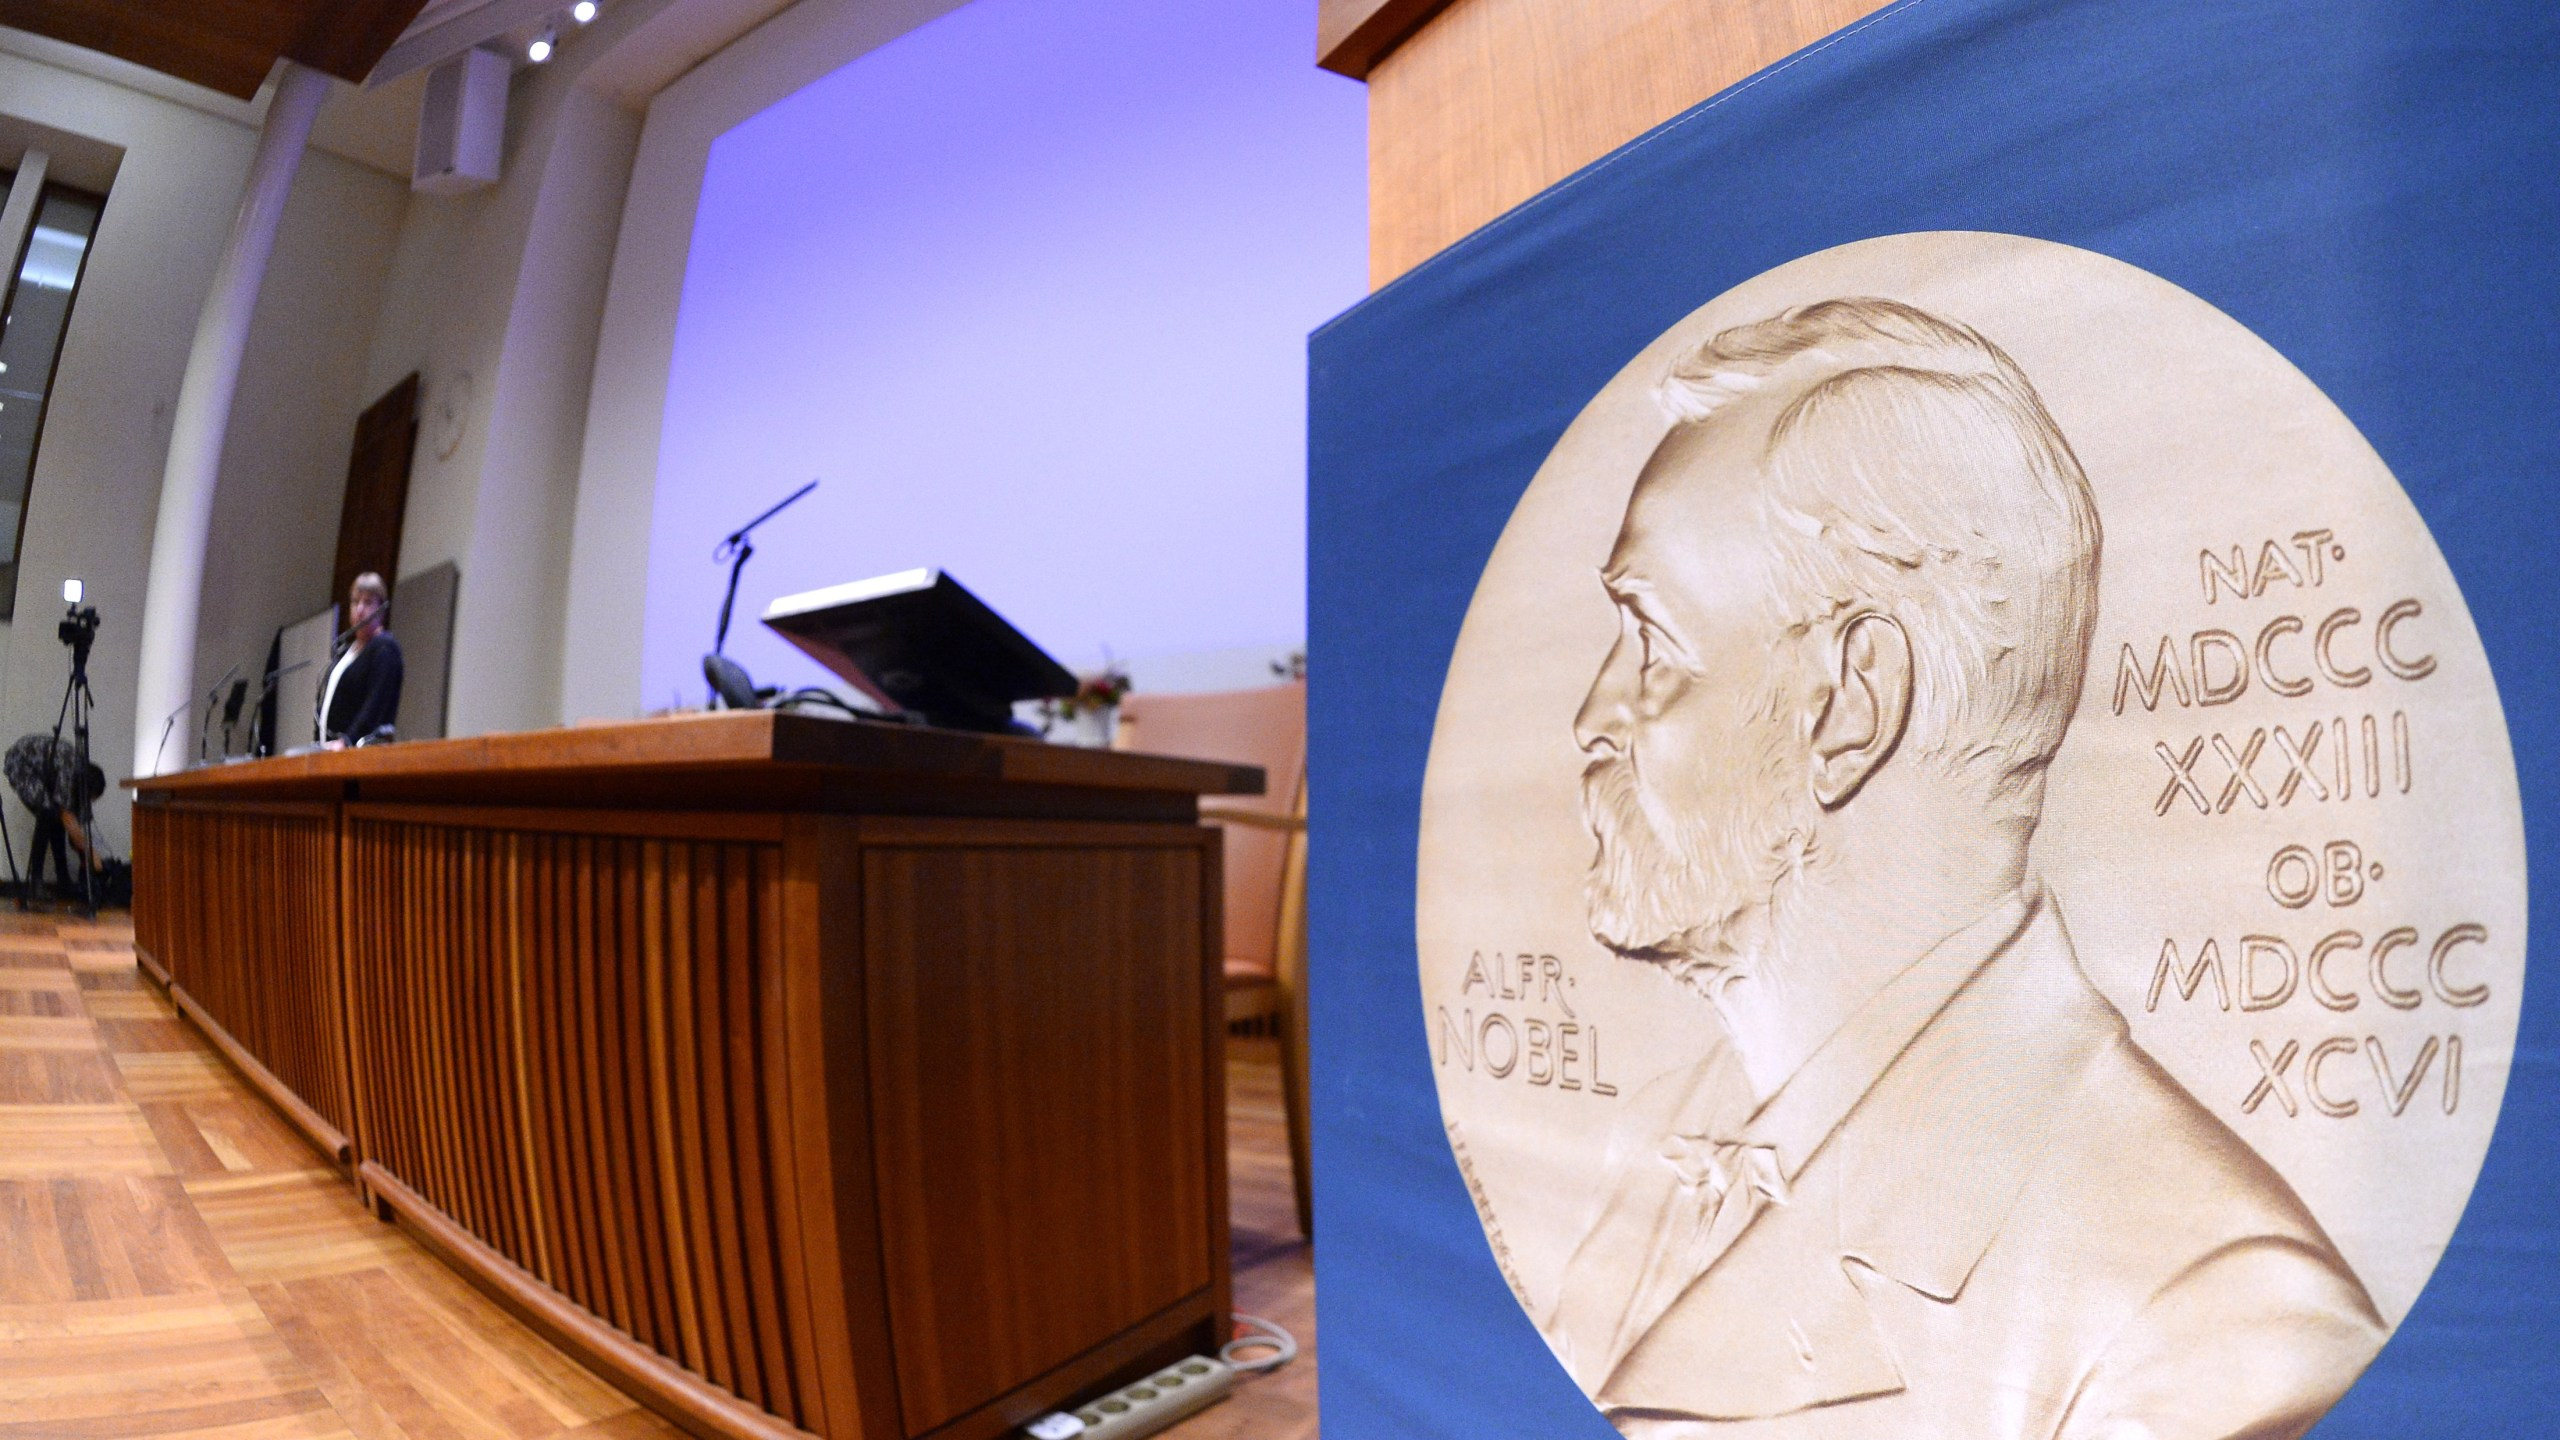 The laureate medal featuring the portrait of Alfred Nobel is seen on a sign before the Nobel Committee announced the 2015 winners on Oct. 5, 2015, in Stockholm, Sweden.(Credit: Jonathan Nackstrand/AFP/Getty Images)